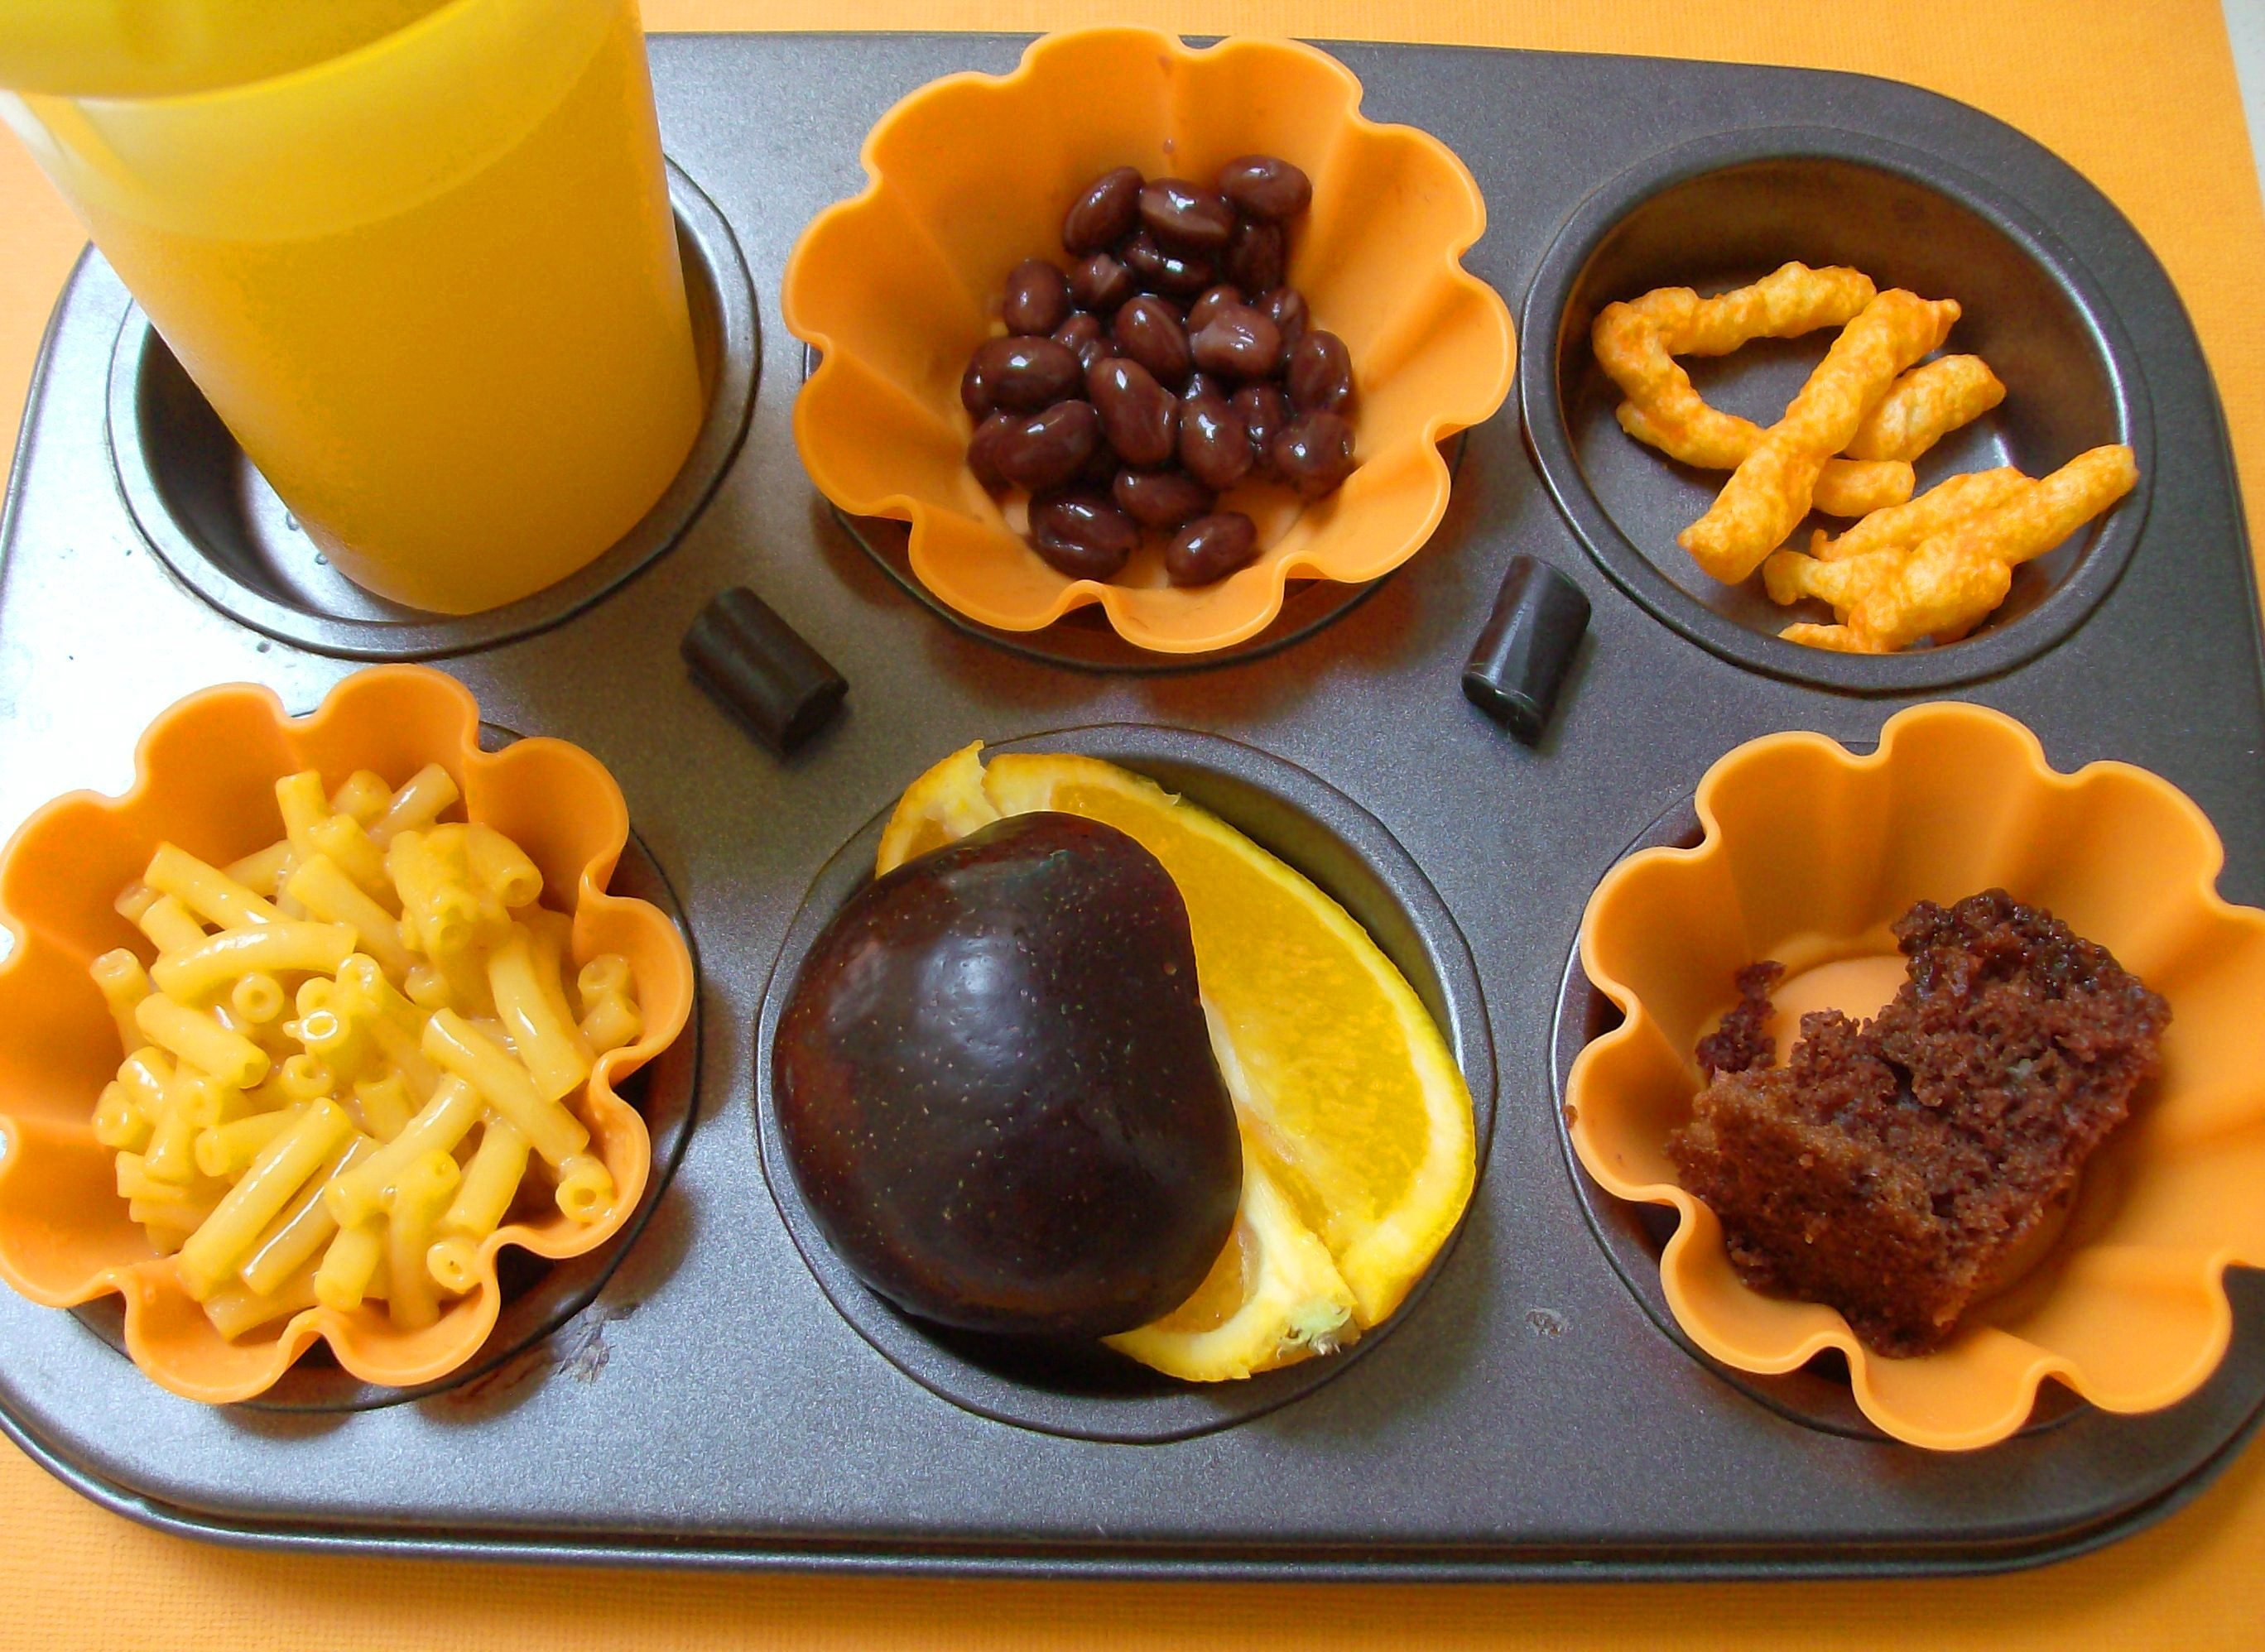 Halloween Muffin Tin Meal: Orange and Black